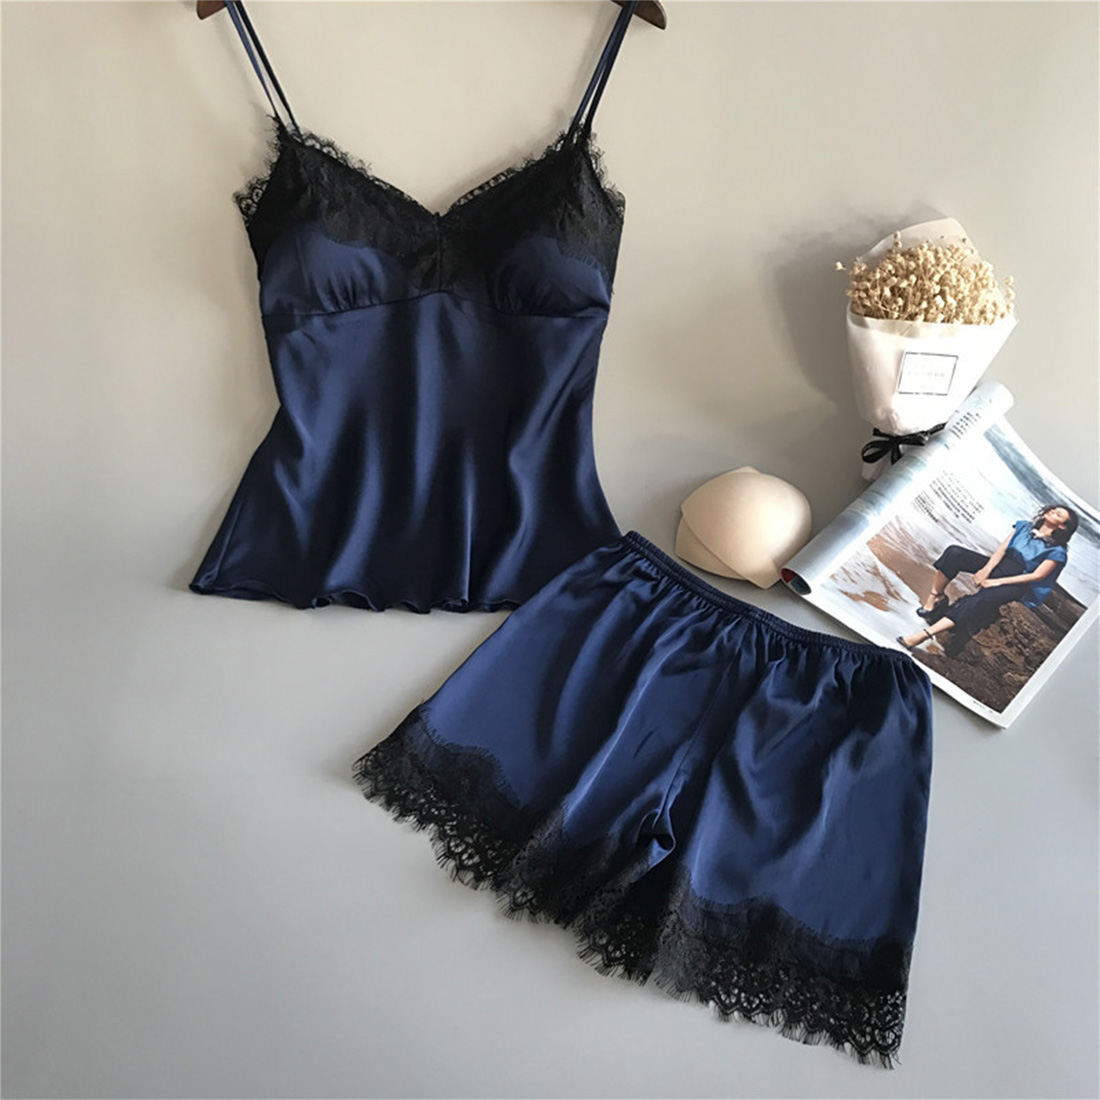 Women Nightwear Sleeveless Sleepwear Women Pajama Set Casual Home Clothes Sexy Lace Lingerie Solid Crop Top + Shorts